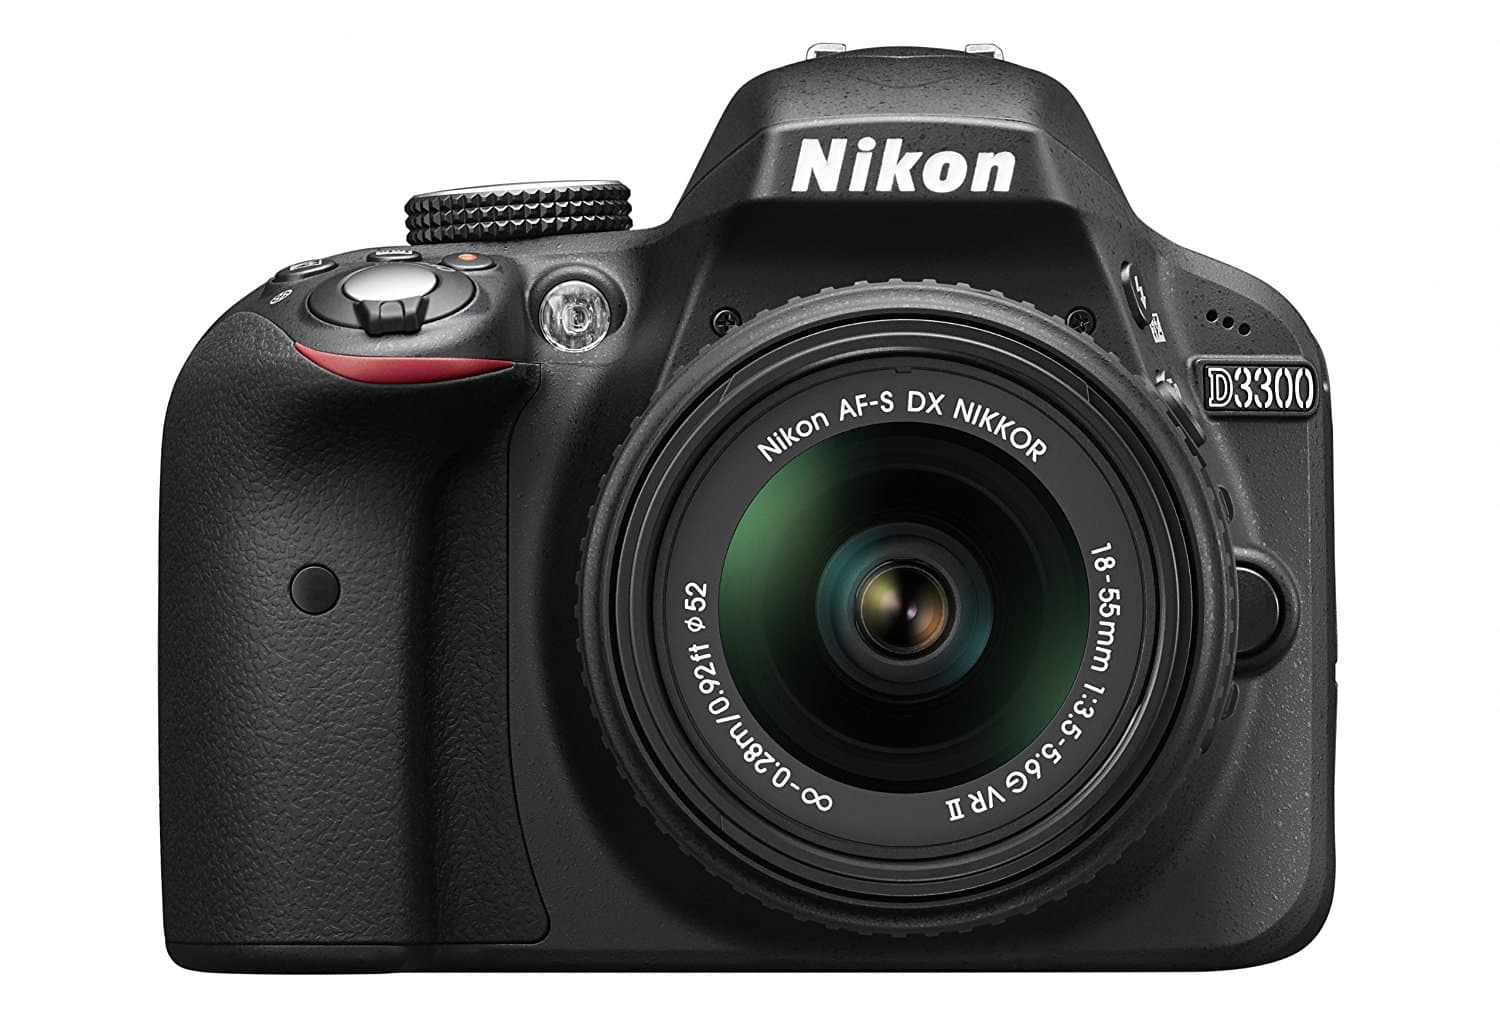 A front view of the Nikon D3300 Camera Kit